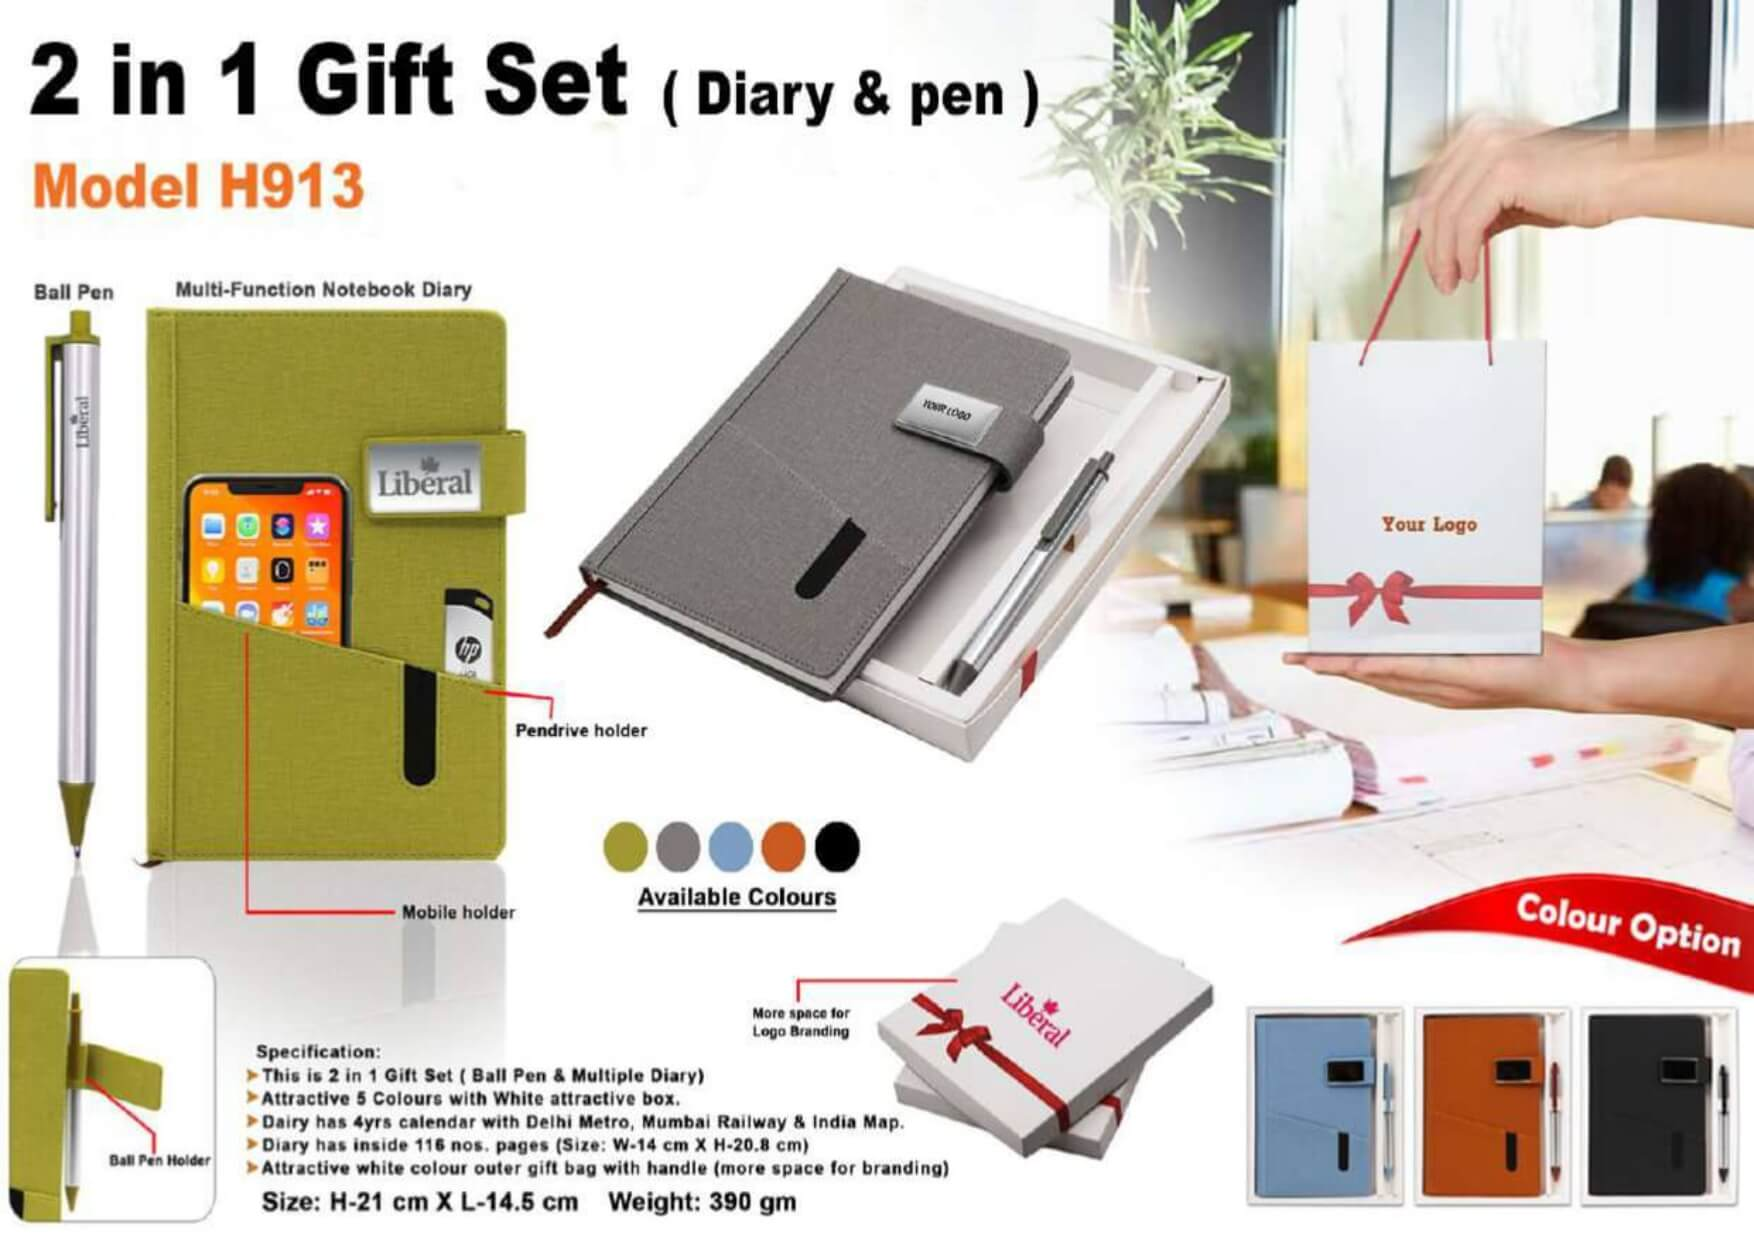 2 in 1 Gift Set Diary and Pen 913